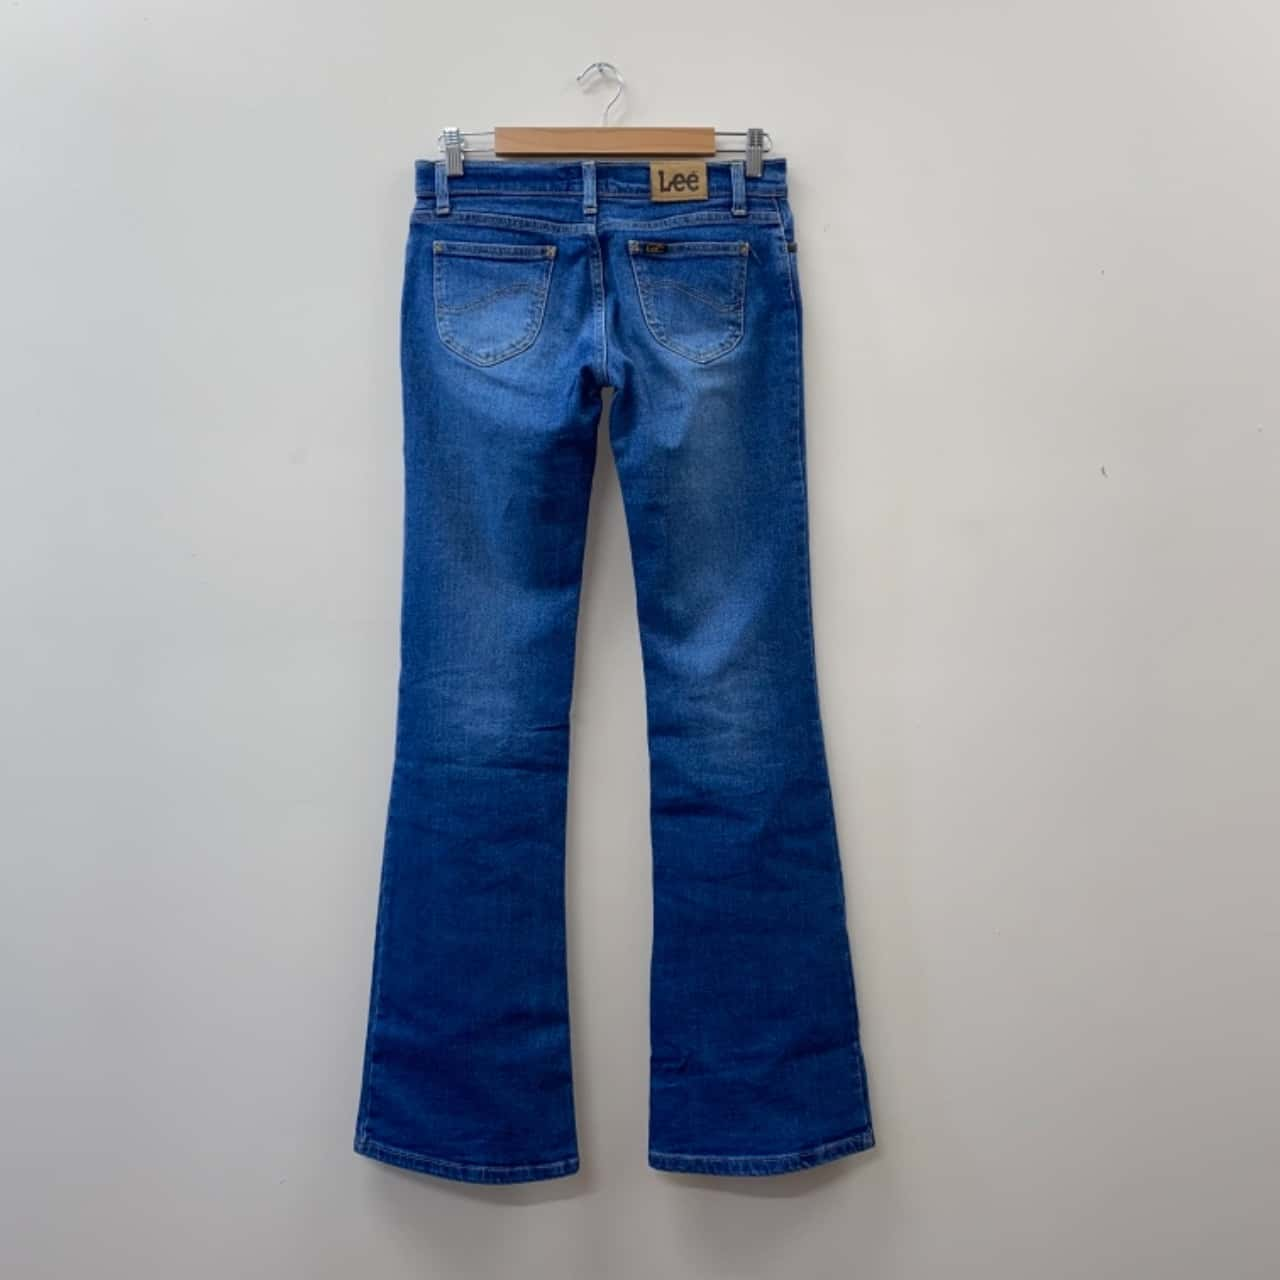 ** REDUCED ** Lee Women's Size 11 Blue Flare Jeans